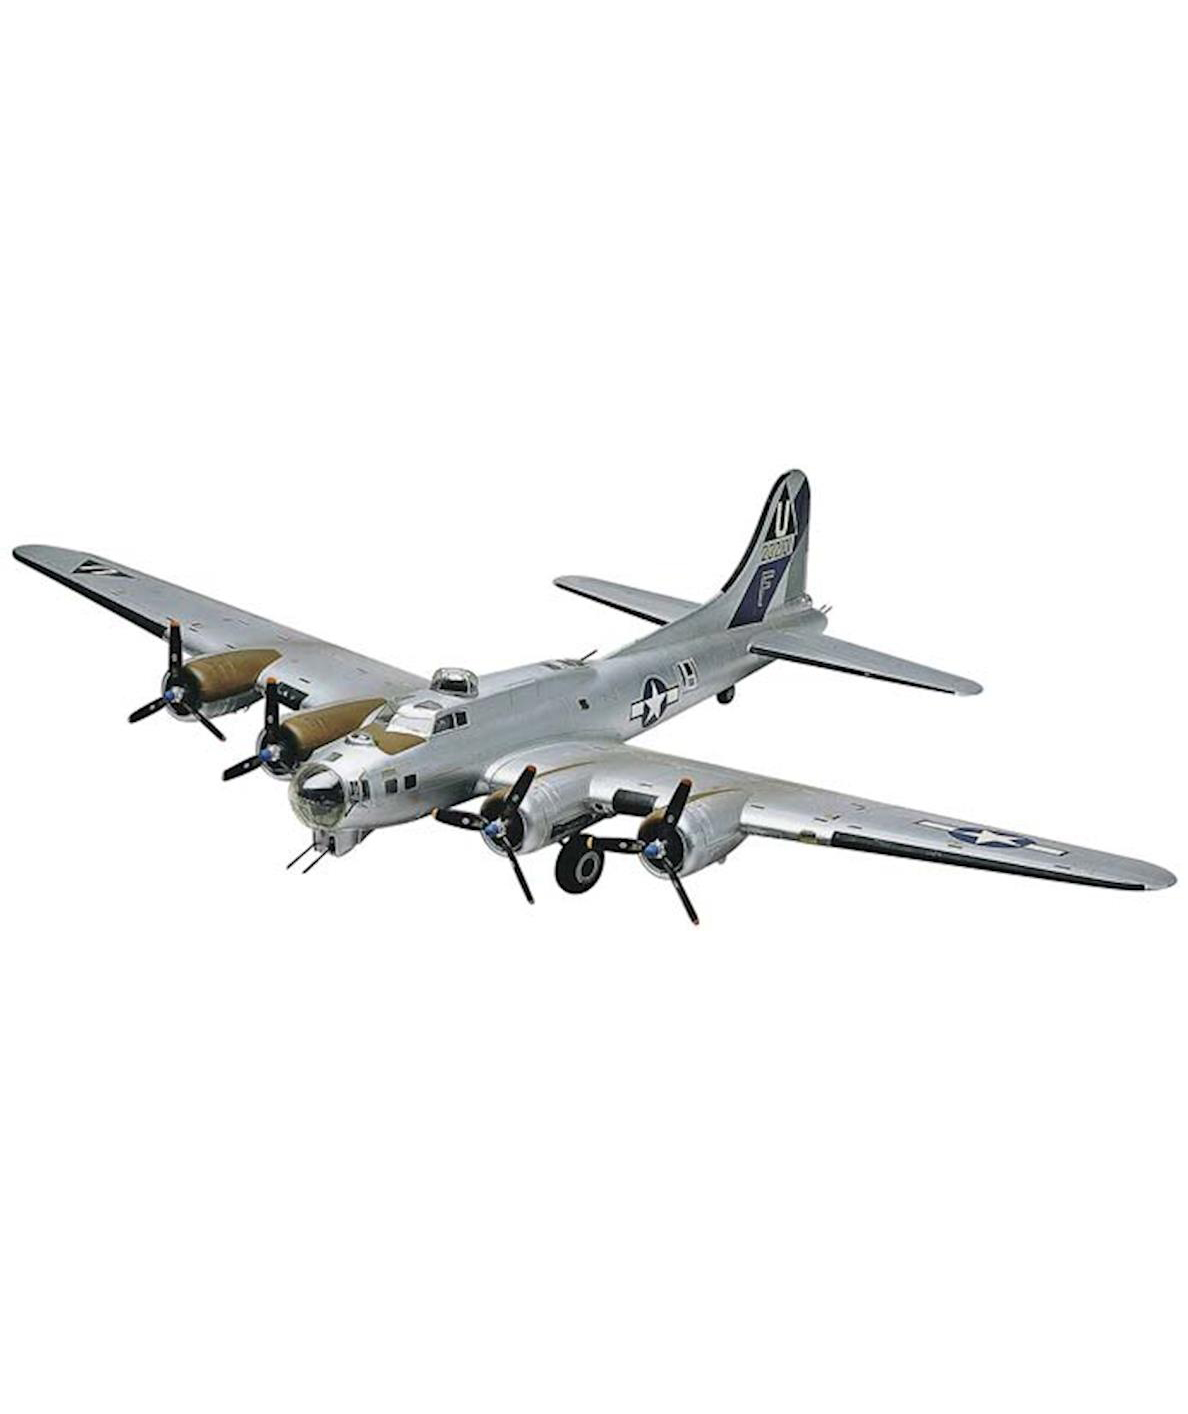 Revell B17G Flying Fortress Model Airplane Kit